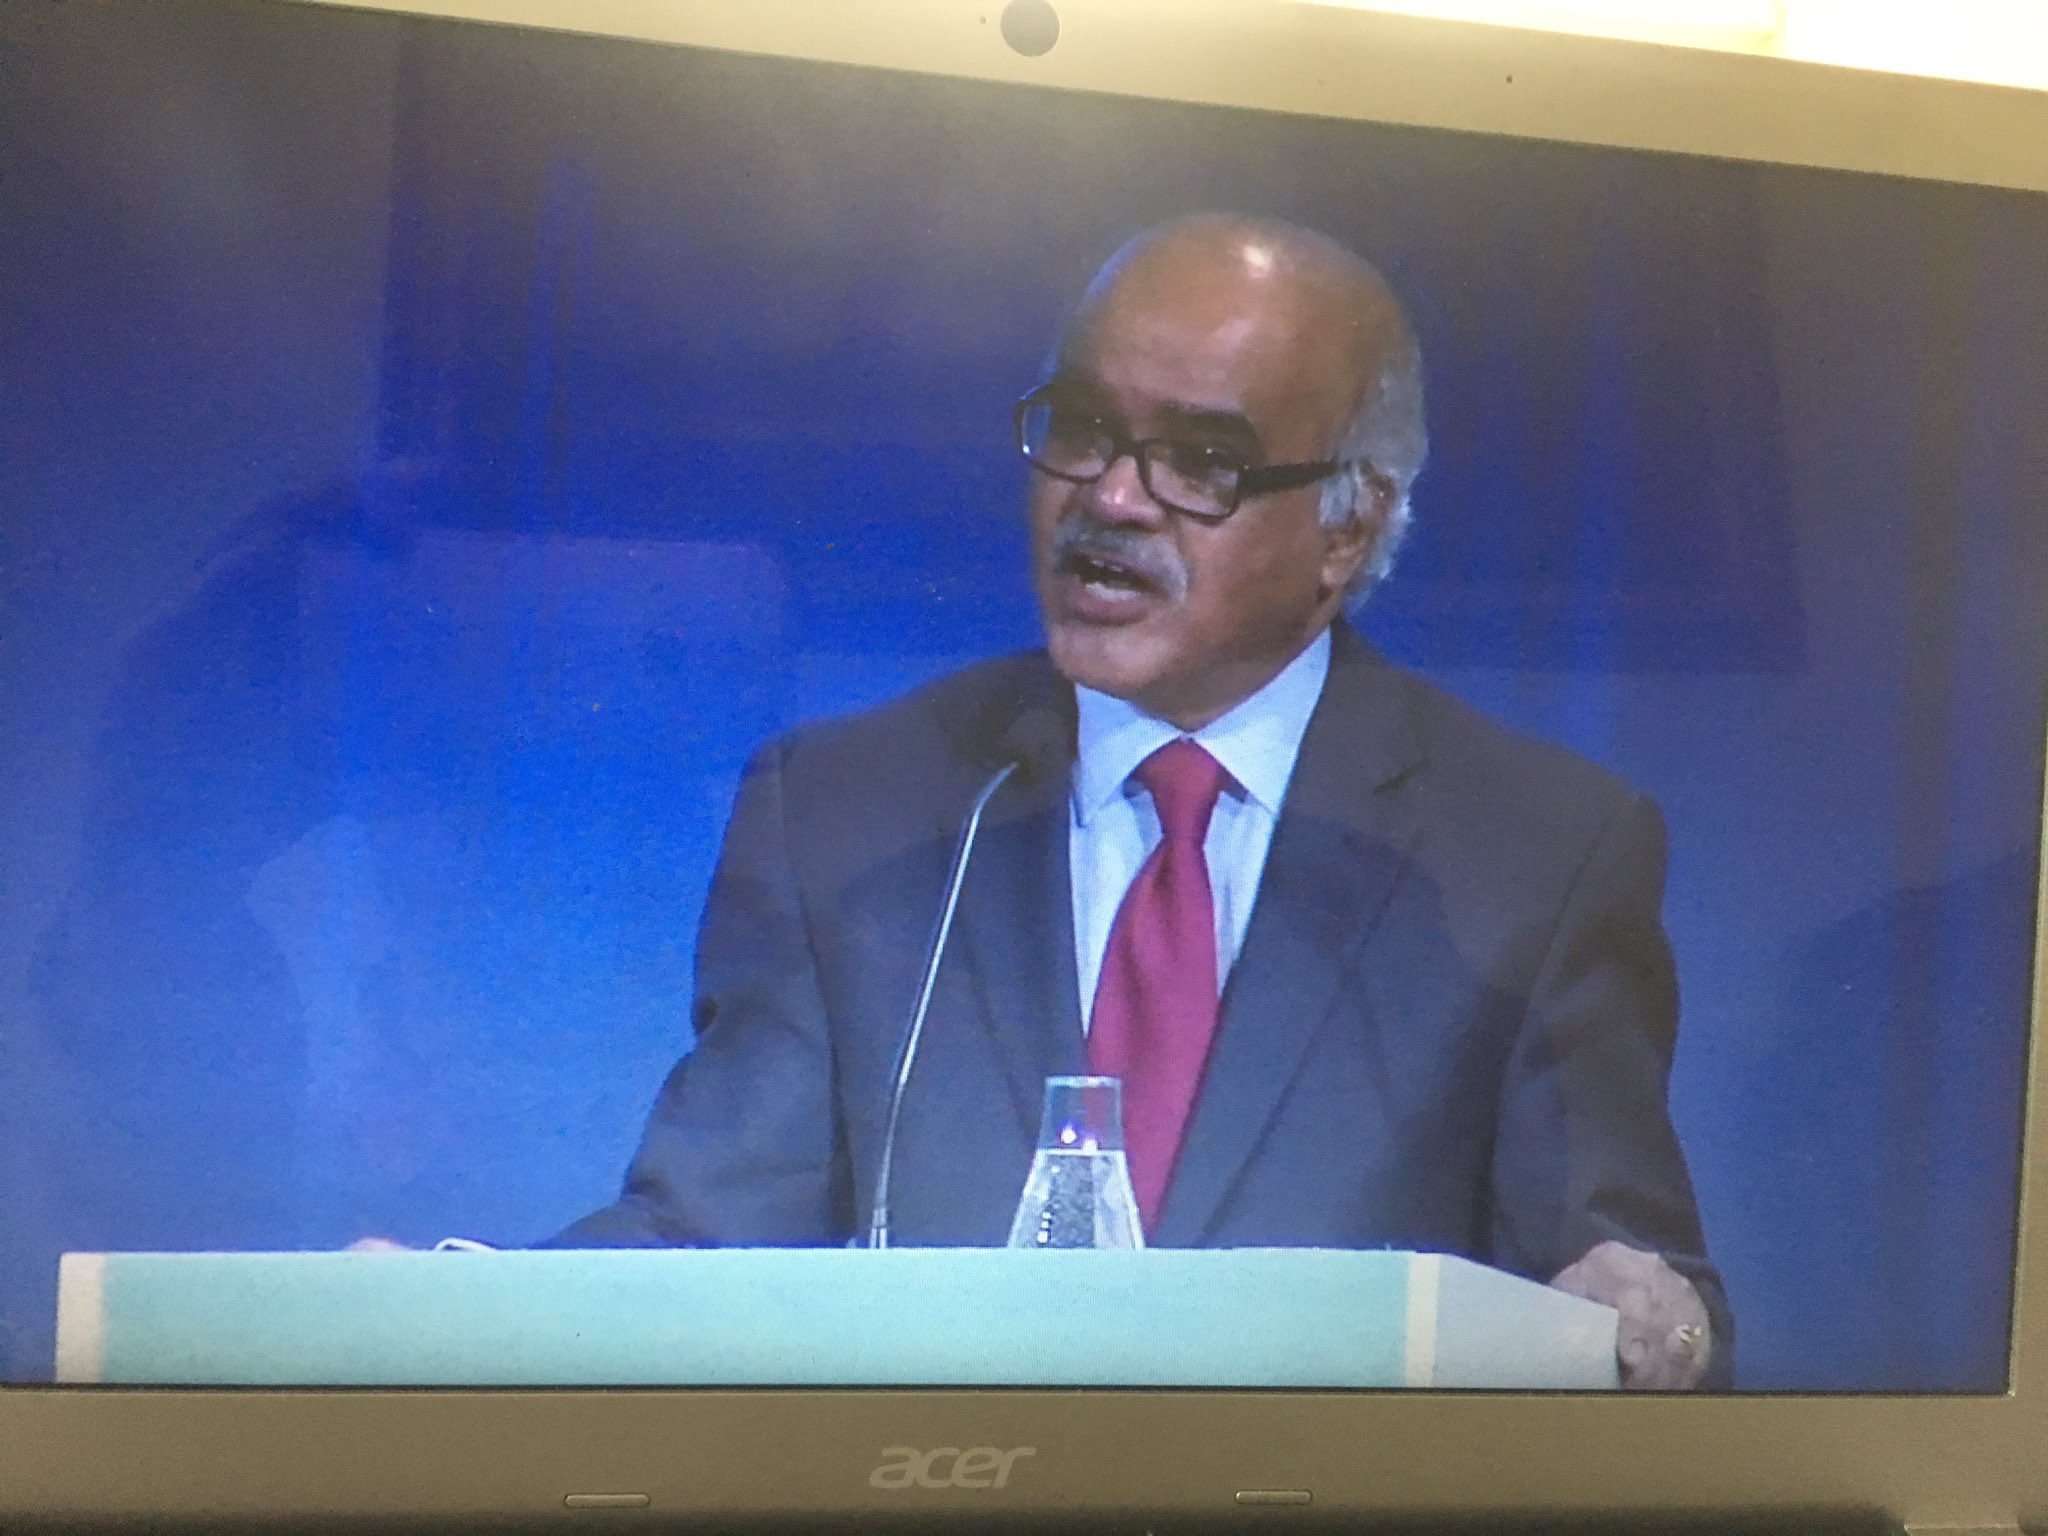 Human development & 2030 agenda reinforces each other. #HDR2016 @SelimJahanUNDP @UNDPLive https://t.co/pmSaRsQgwD